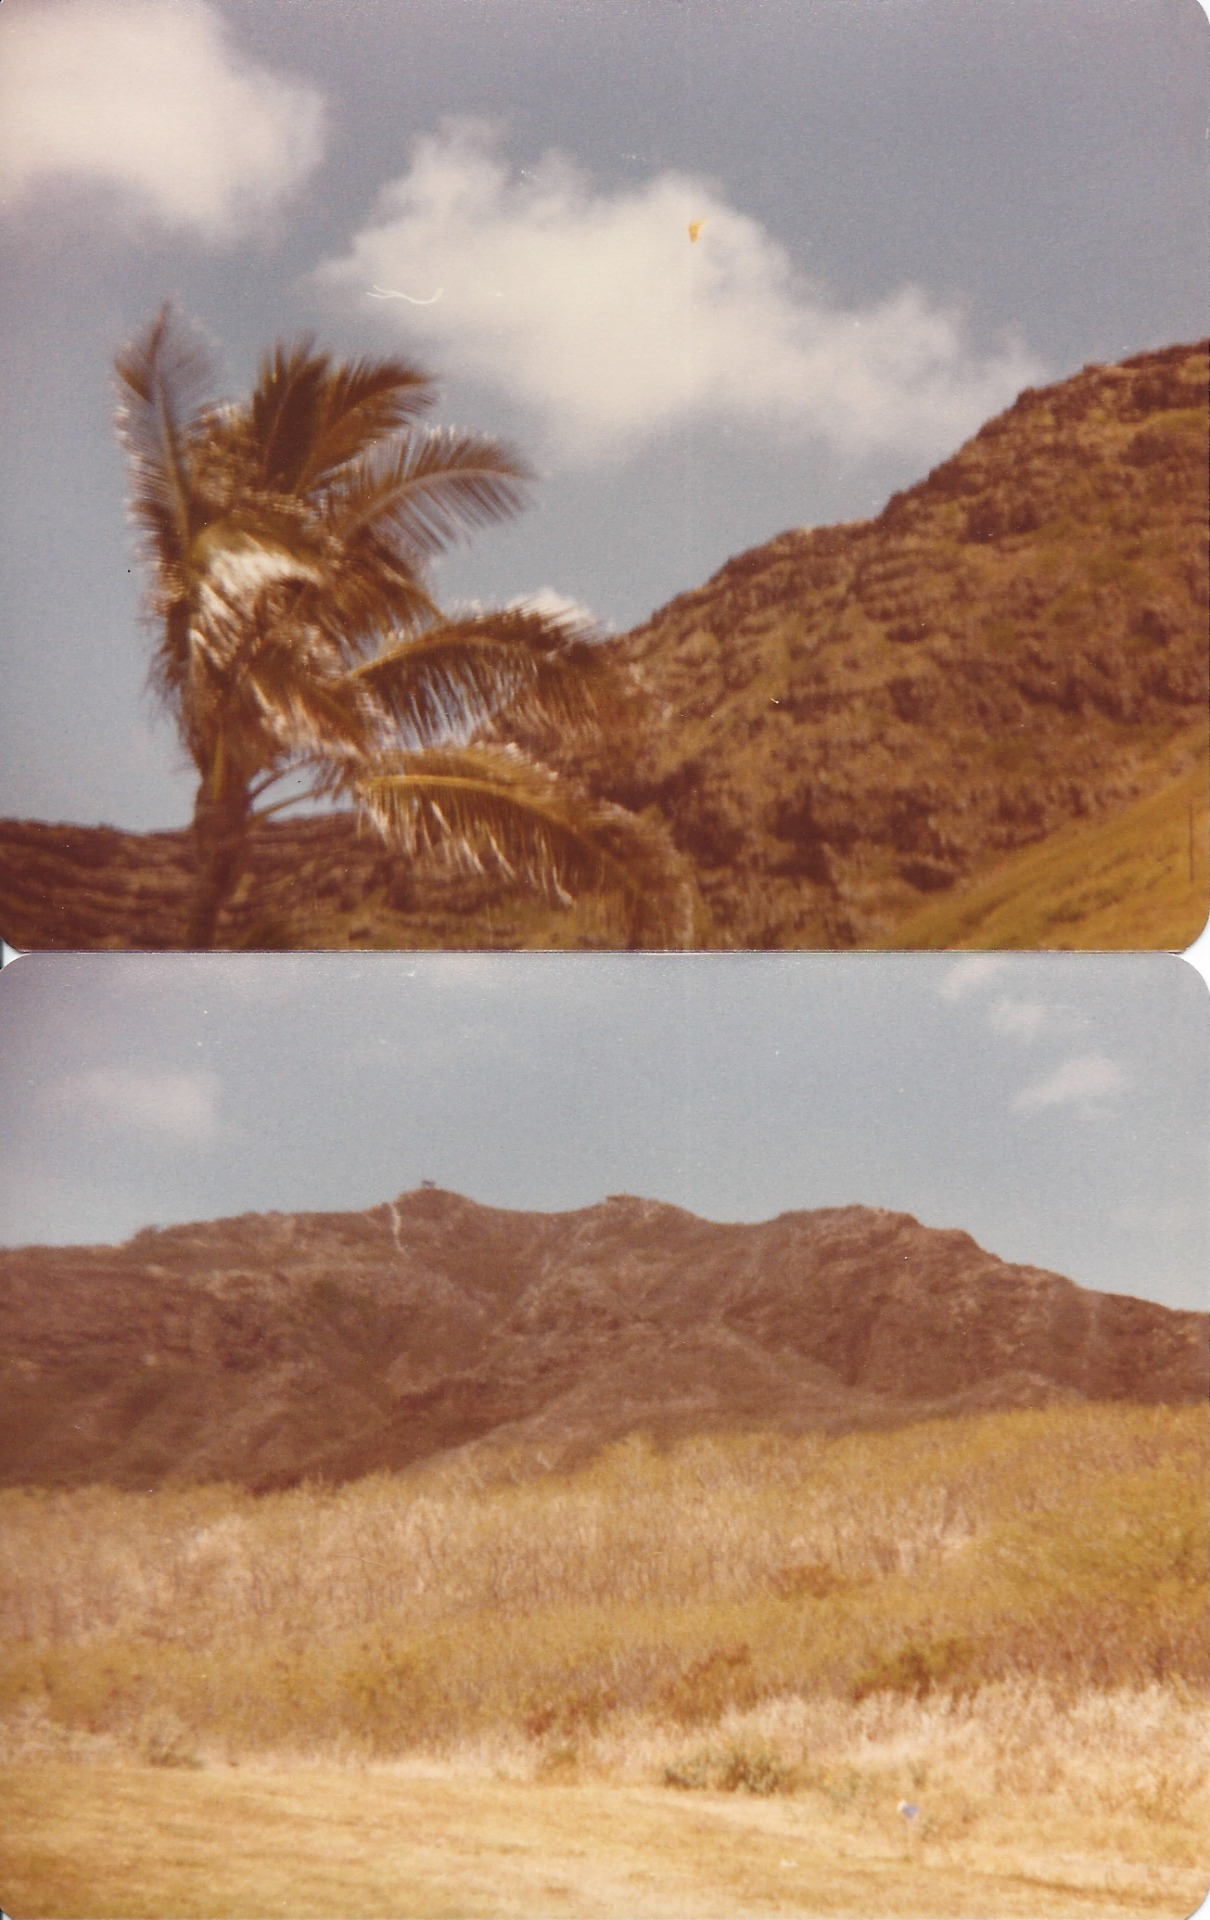 these are pictures my mom took in hawaii in 1979 i am in between finishing up rolls so i thought i'd post some since i just came across them.